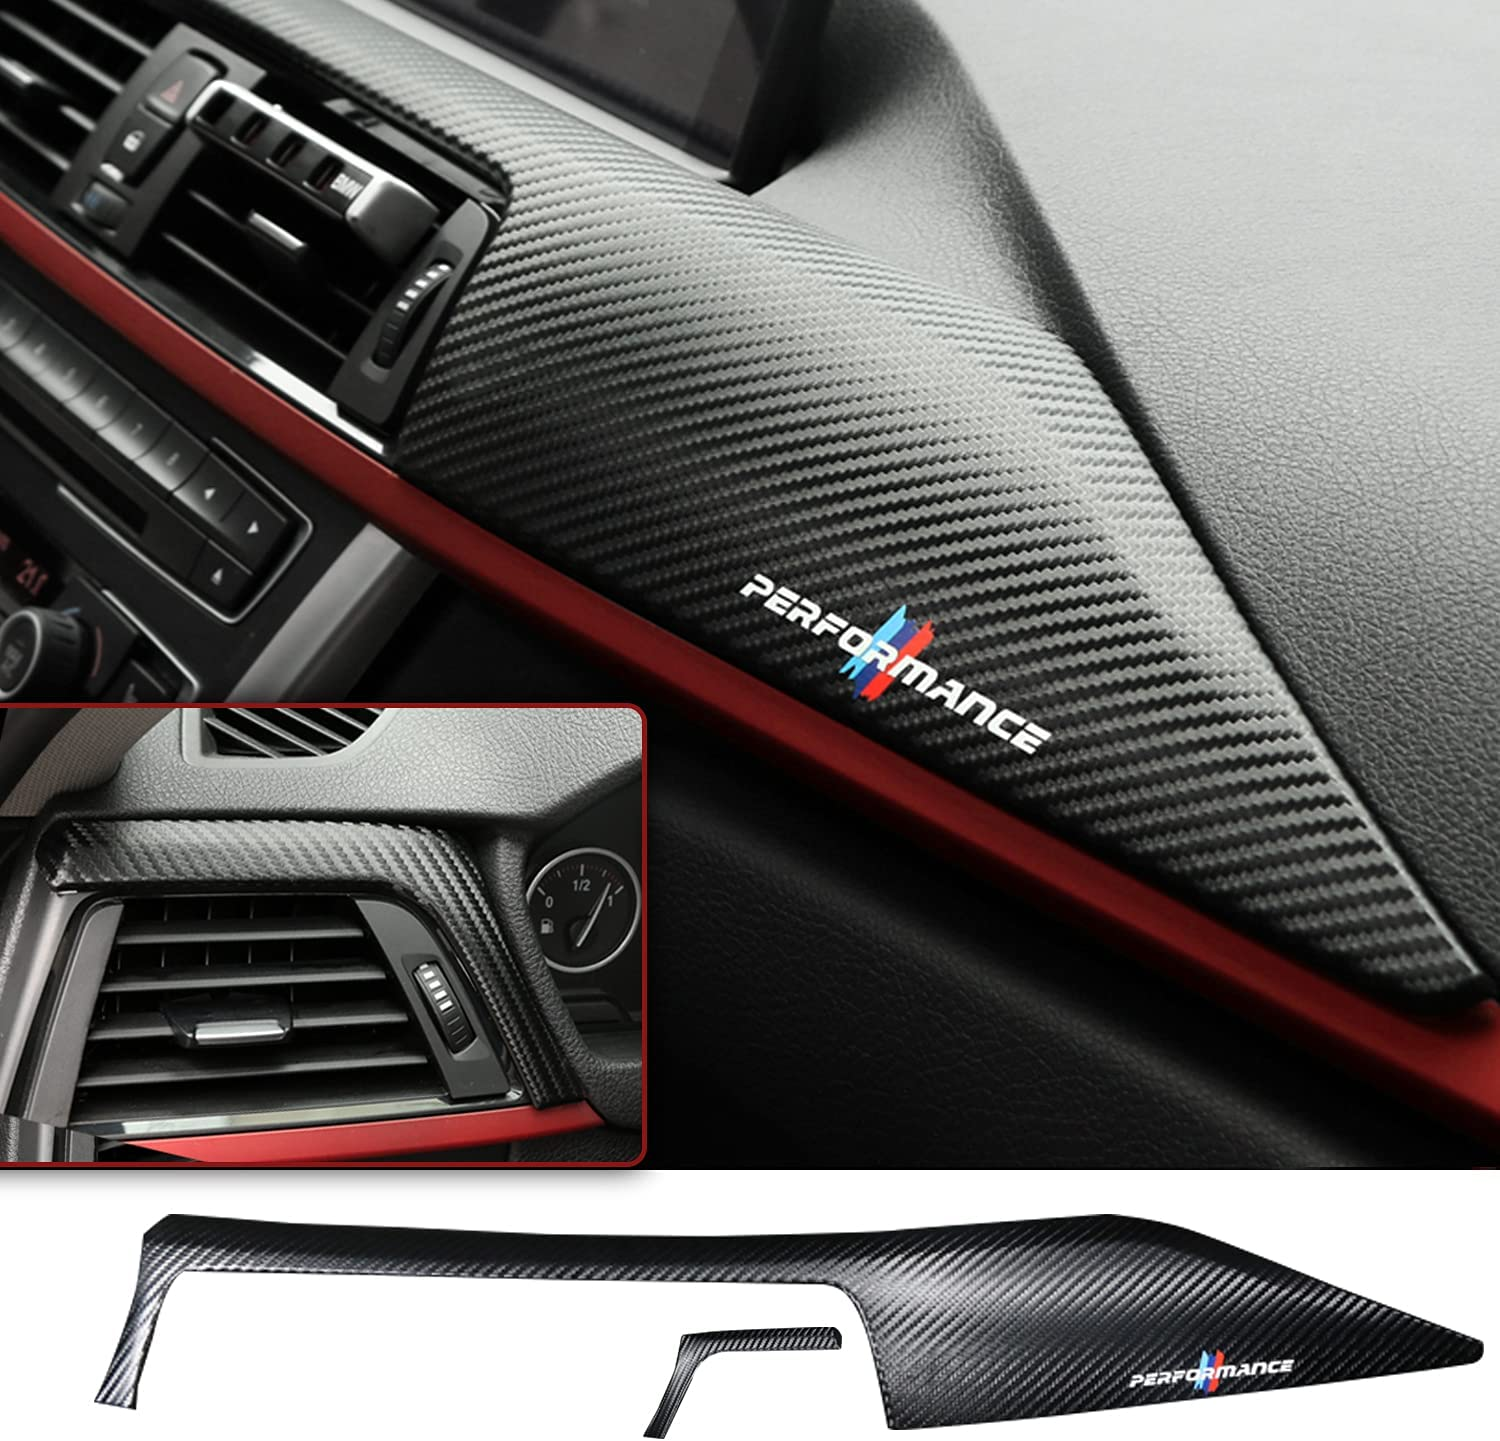 Car Carbon Fiber Texture Interior Steering Wheel Panel Frame Cover Trim Fit for BMW 3 Series F30 F32 F34 2013 2014 2015 Carbon texture A